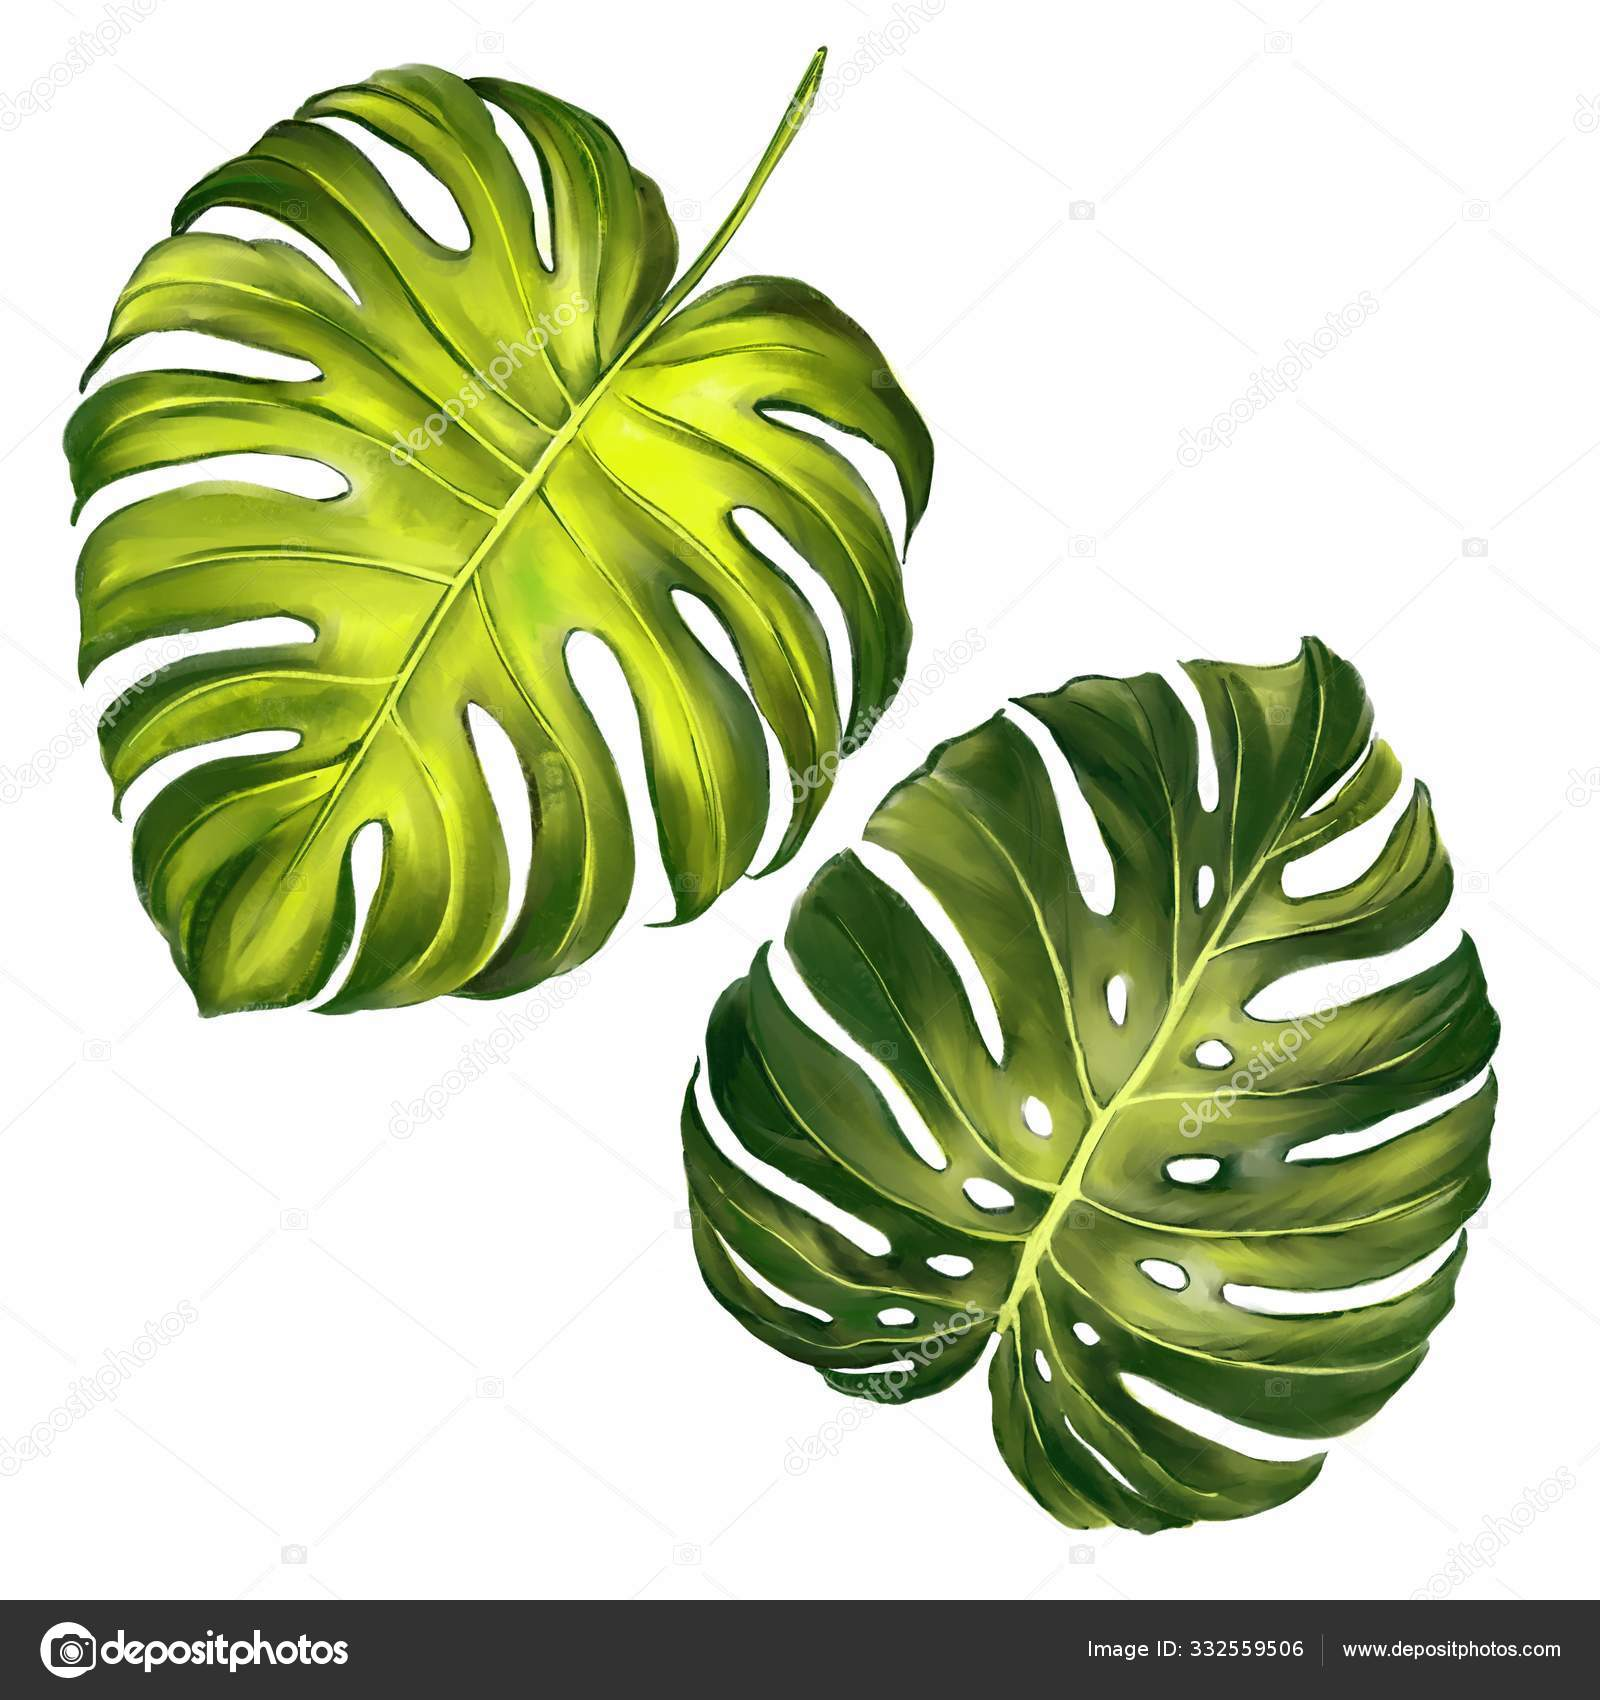 Tropical Leaves Jungle Botanical Floral Elements Palm Leaves Art Illustration Painted With Watercolors Isolated On White Background Stock Photo C Vladischern 332559506 All art prints include a 1 white border around the image to allow for future framing and matting, if desired. https depositphotos com 332559506 stock photo tropical leaves jungle botanical floral html